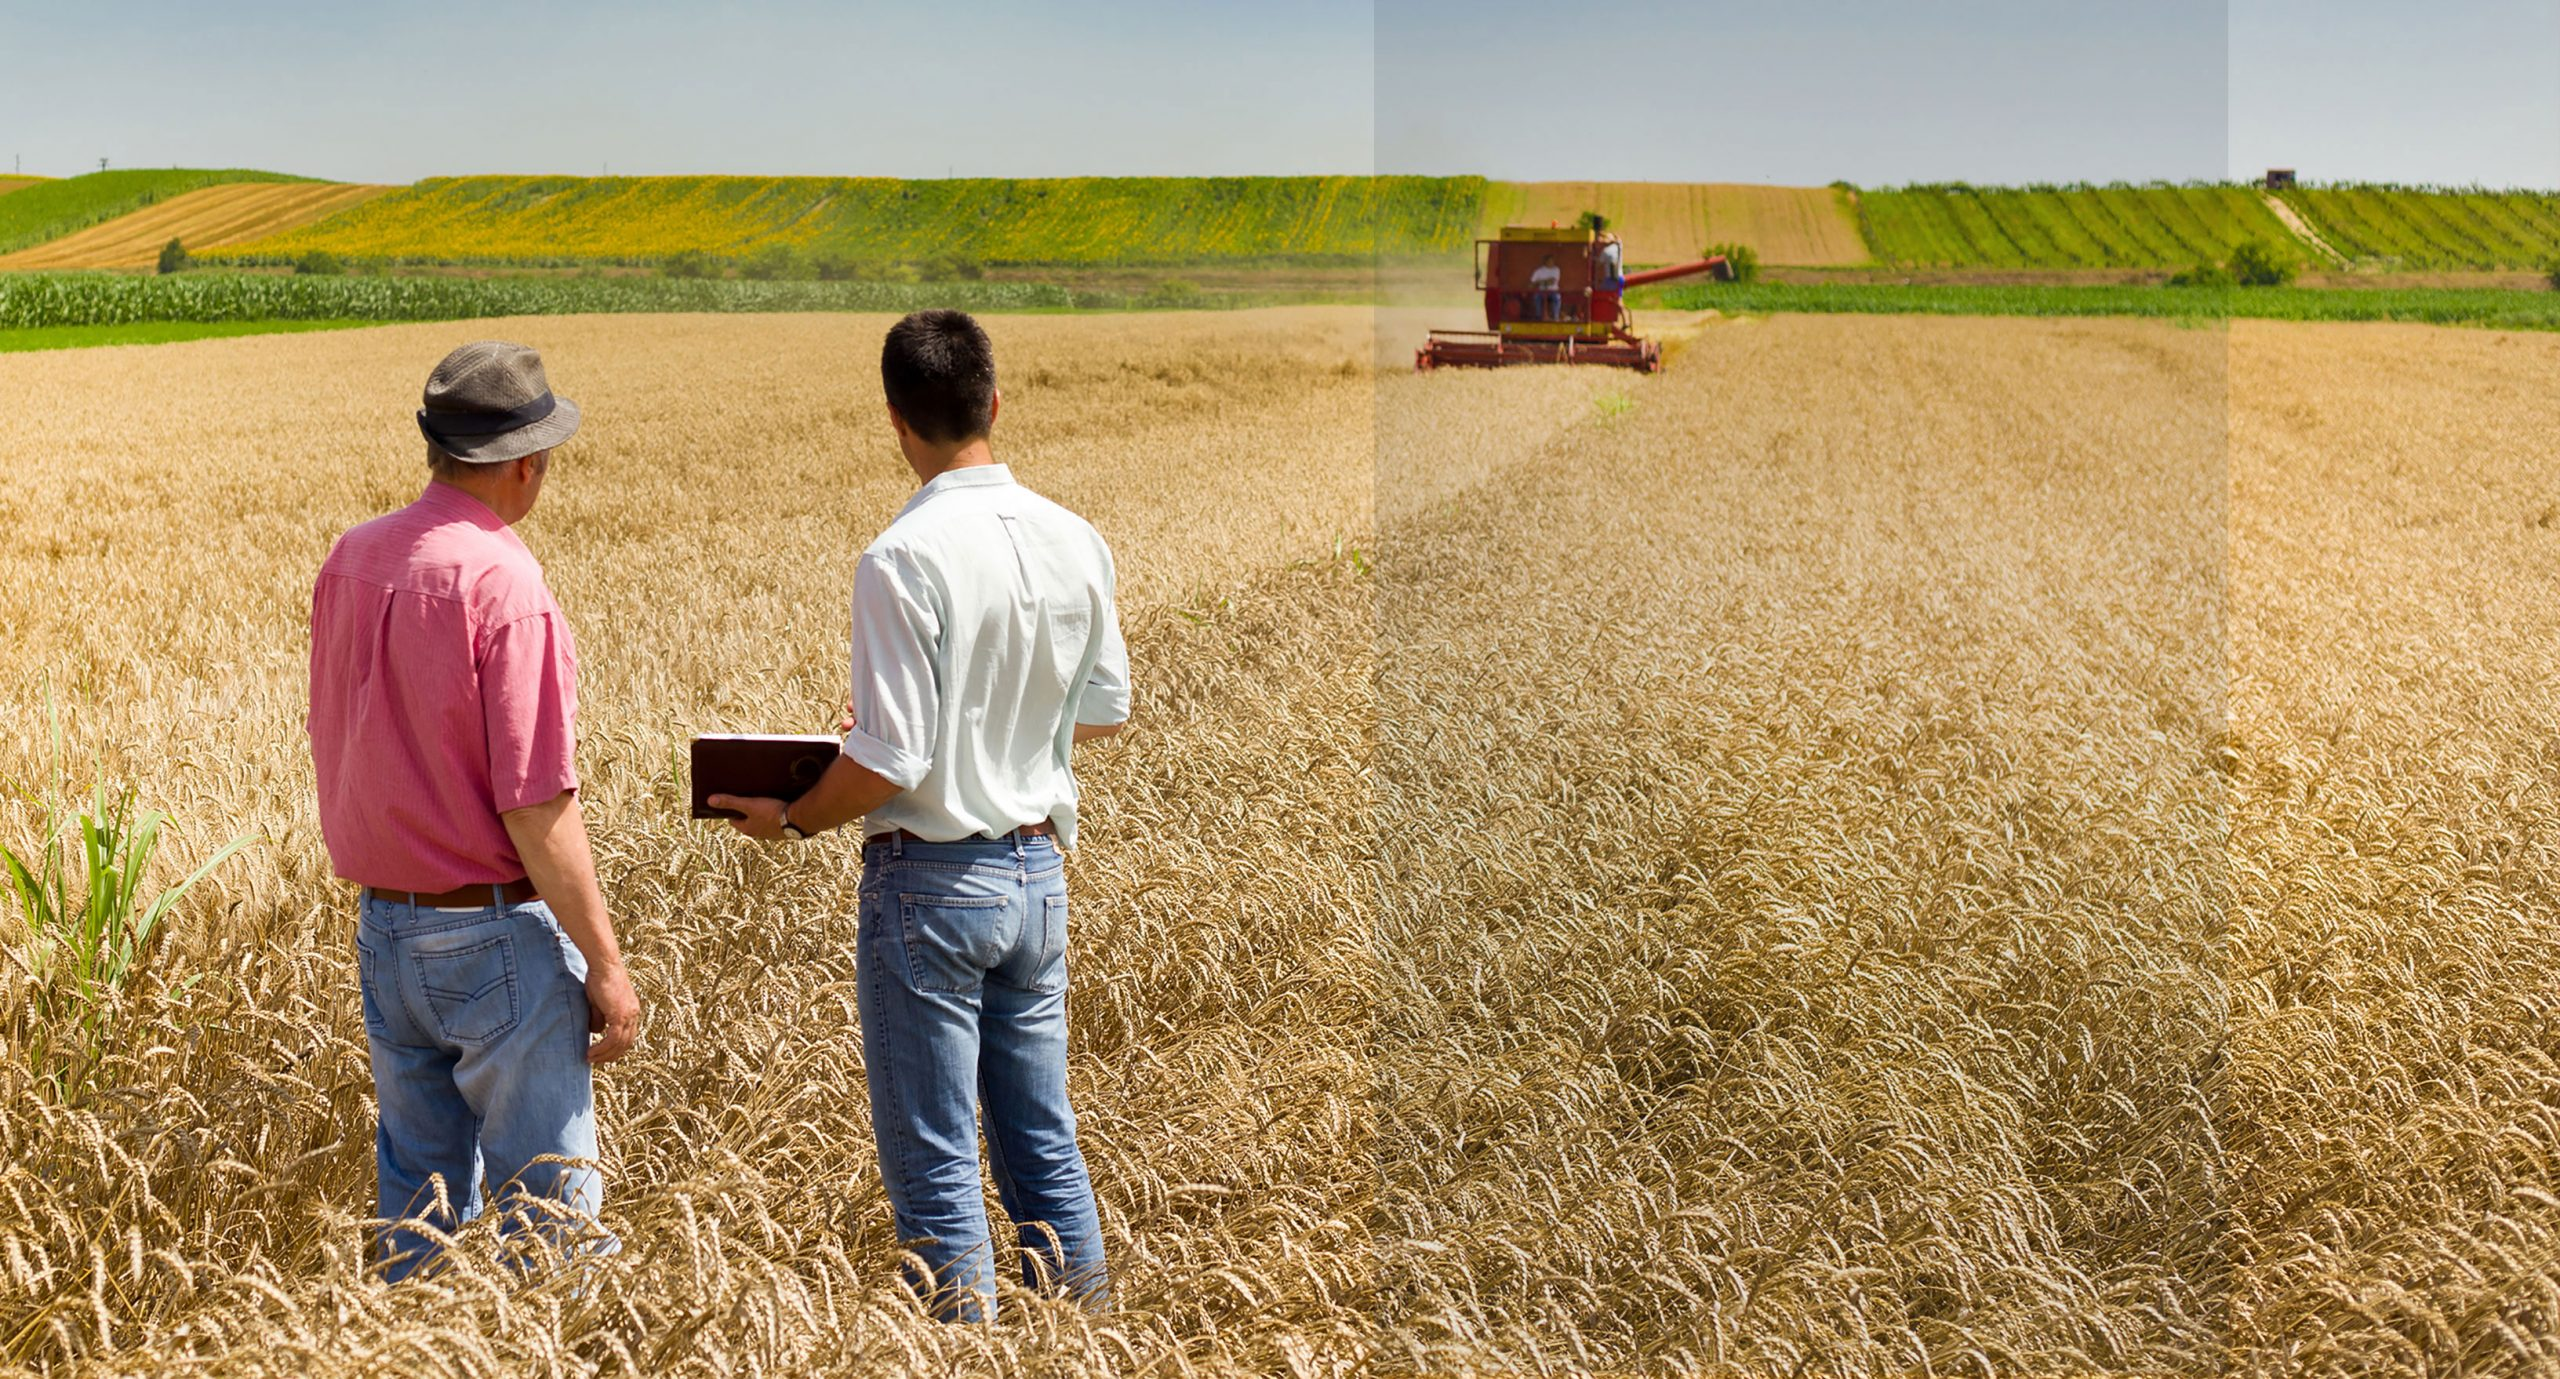 Business discussion in farm field